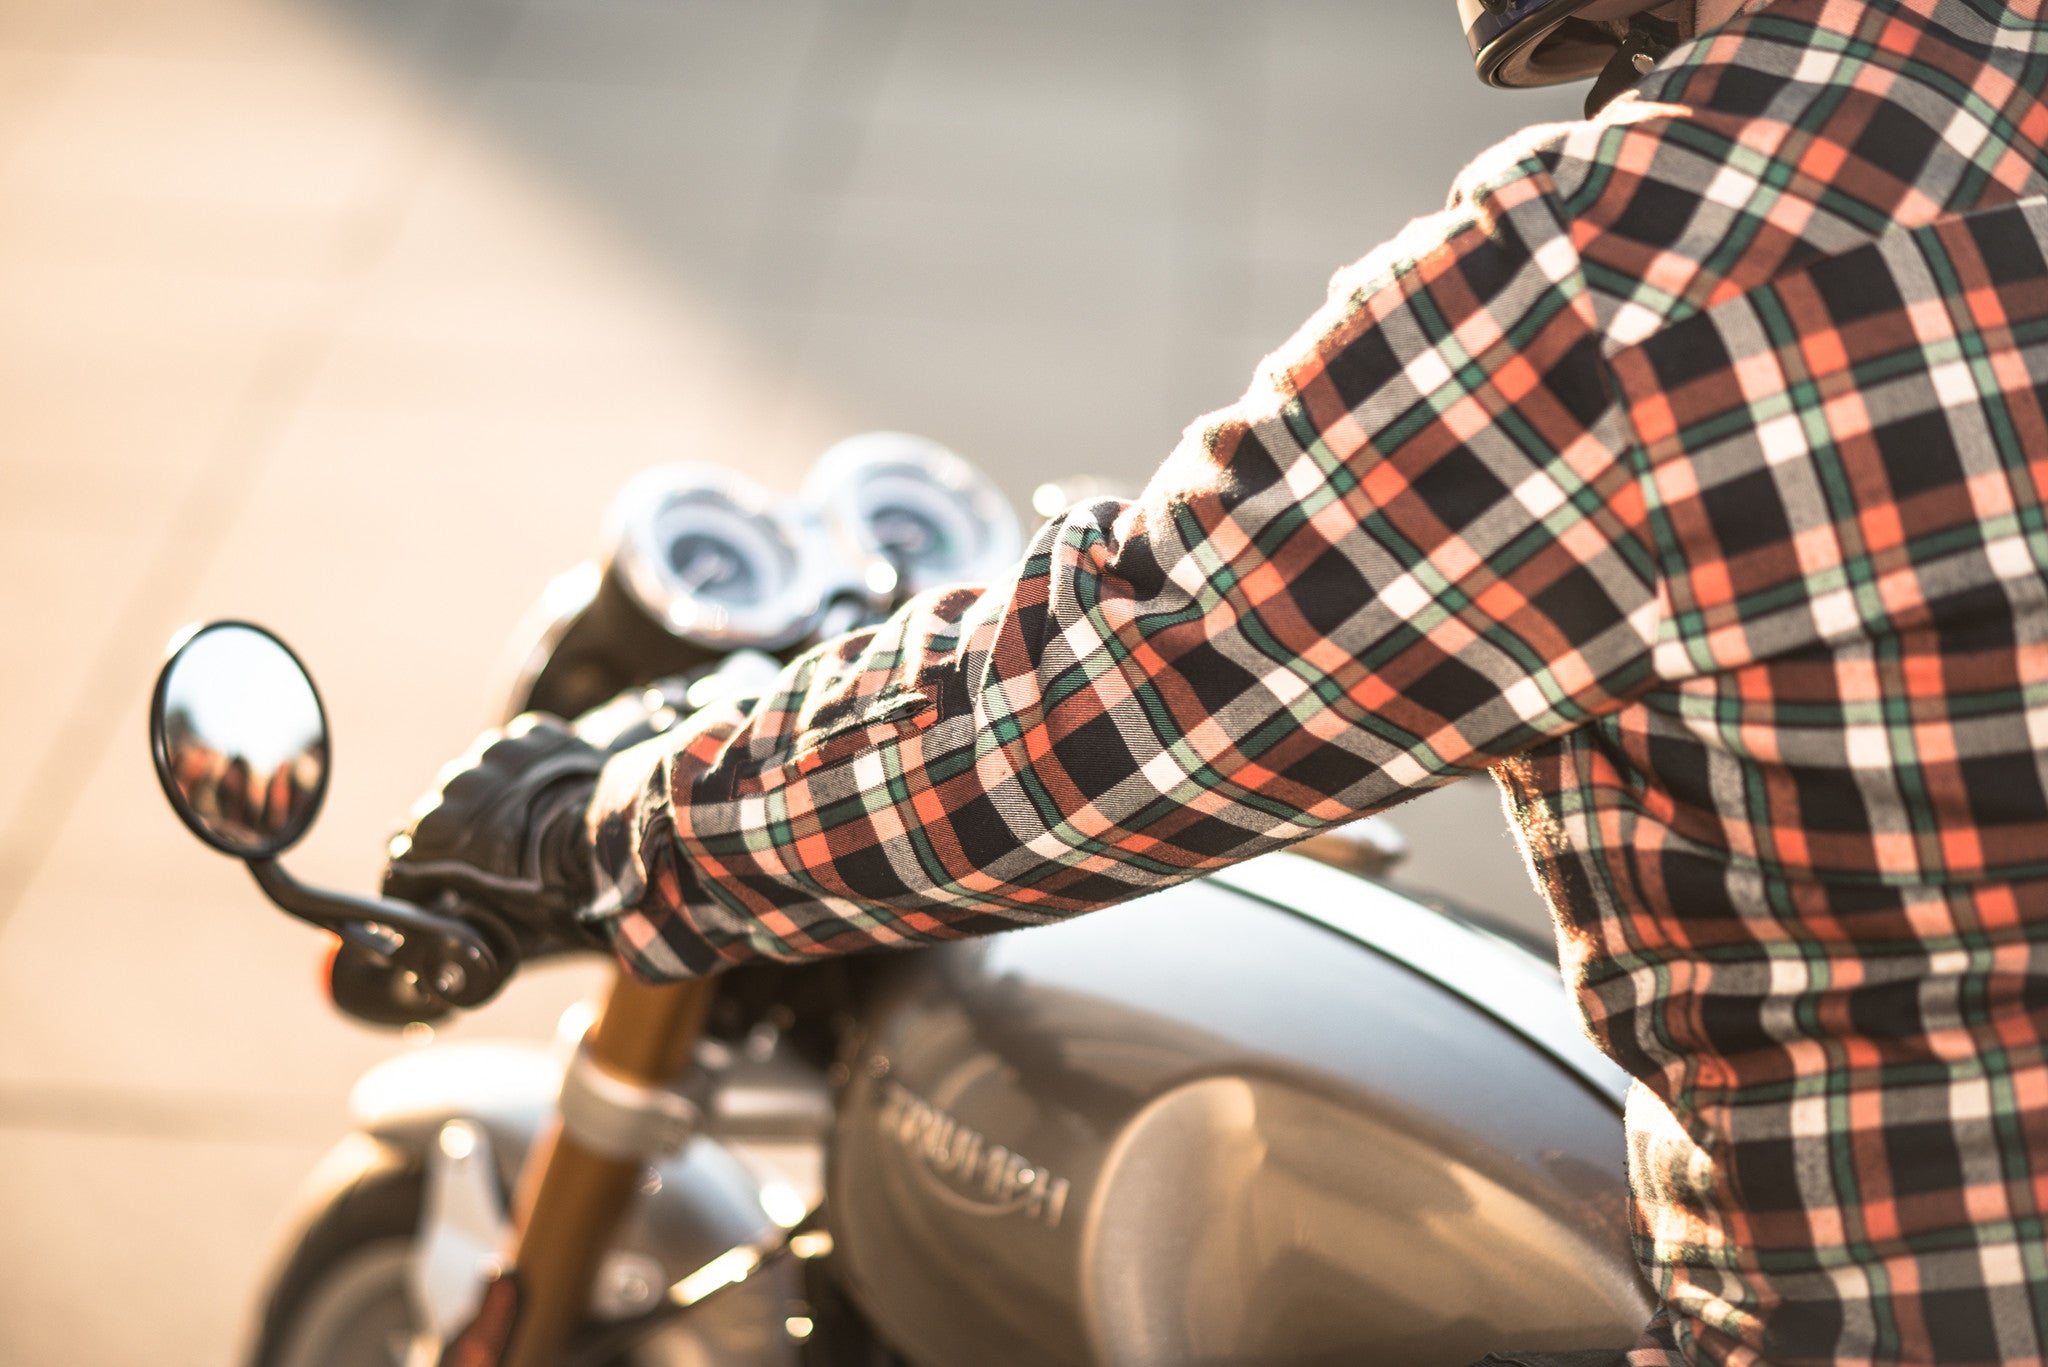 Slim fit Shirt - SAVVY - motorcycle armour shirt